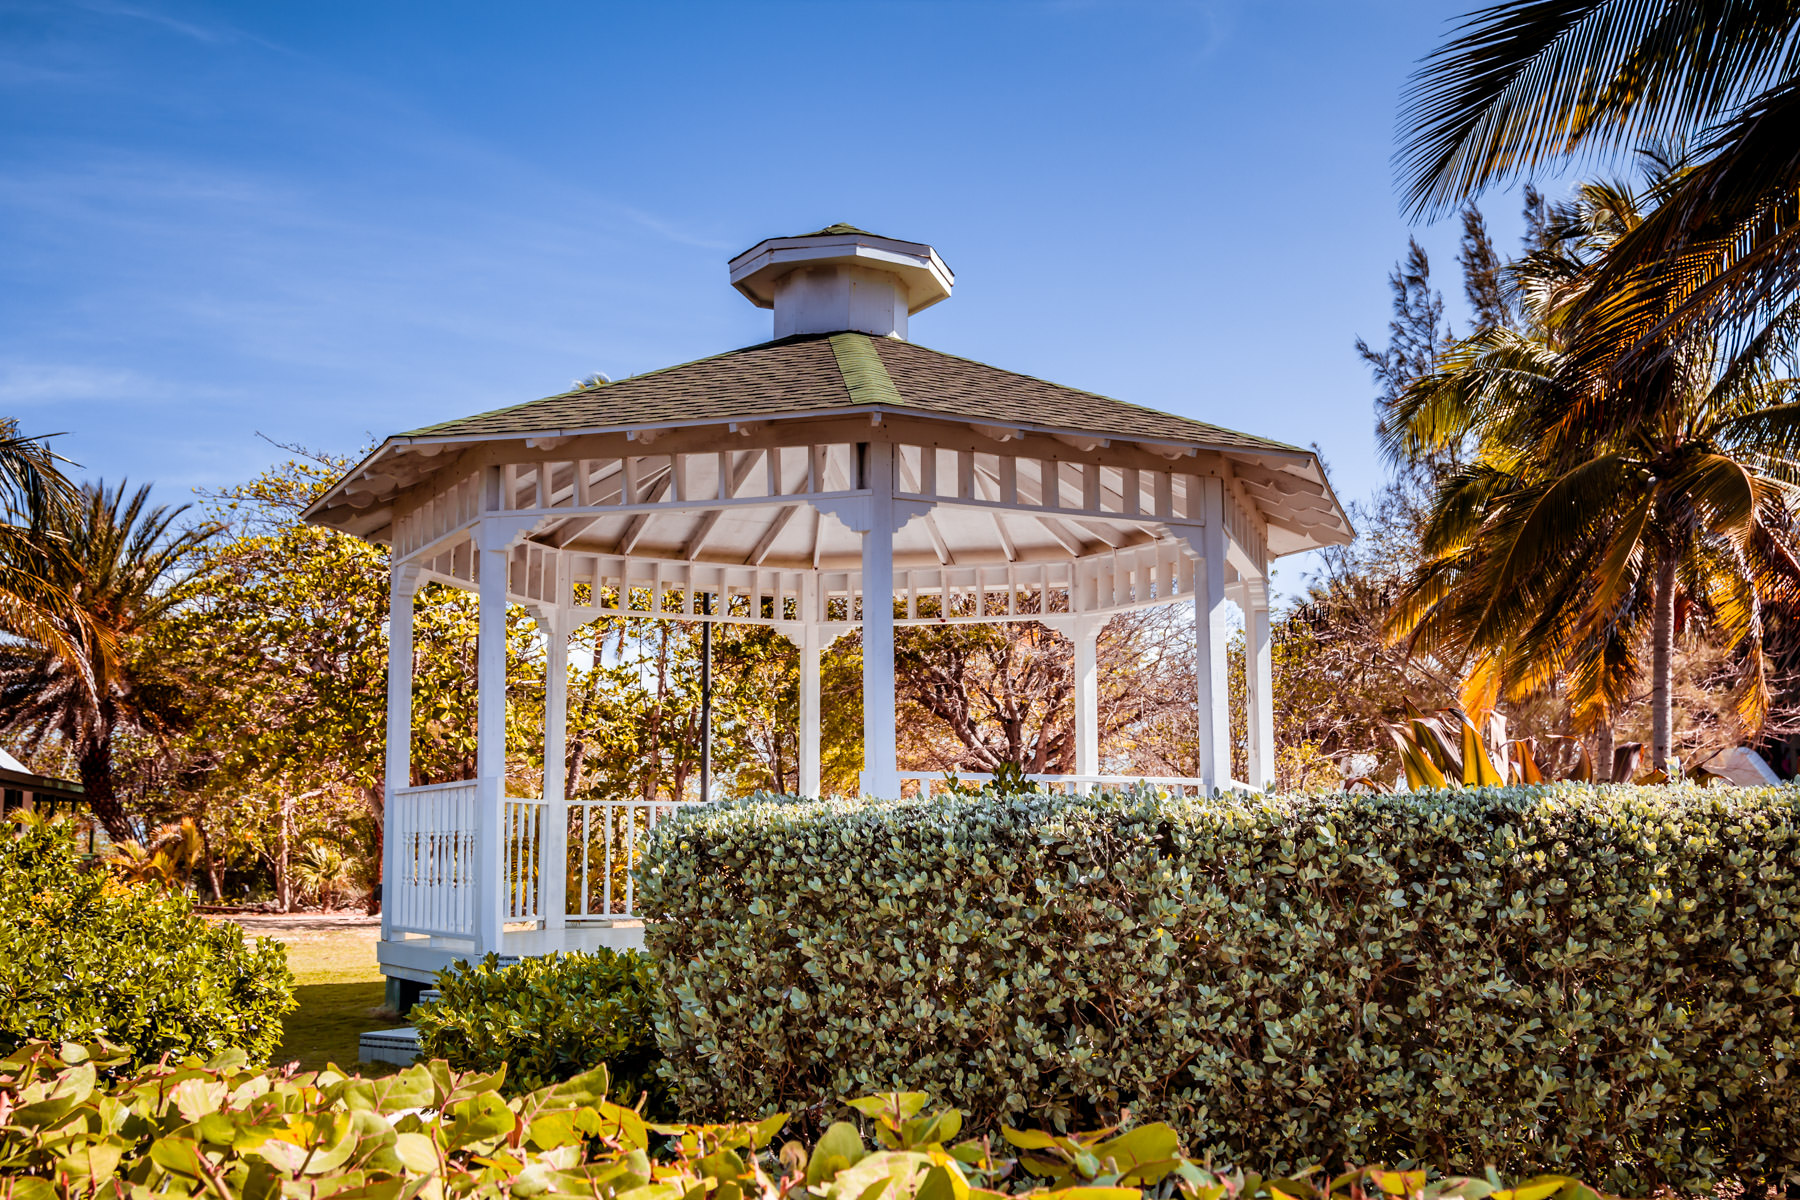 A gazebo in the gardens of the Pedro St. James National Historic Site—home of the oldest building in the Cayman Islands—in George Town, Grand Cayman.